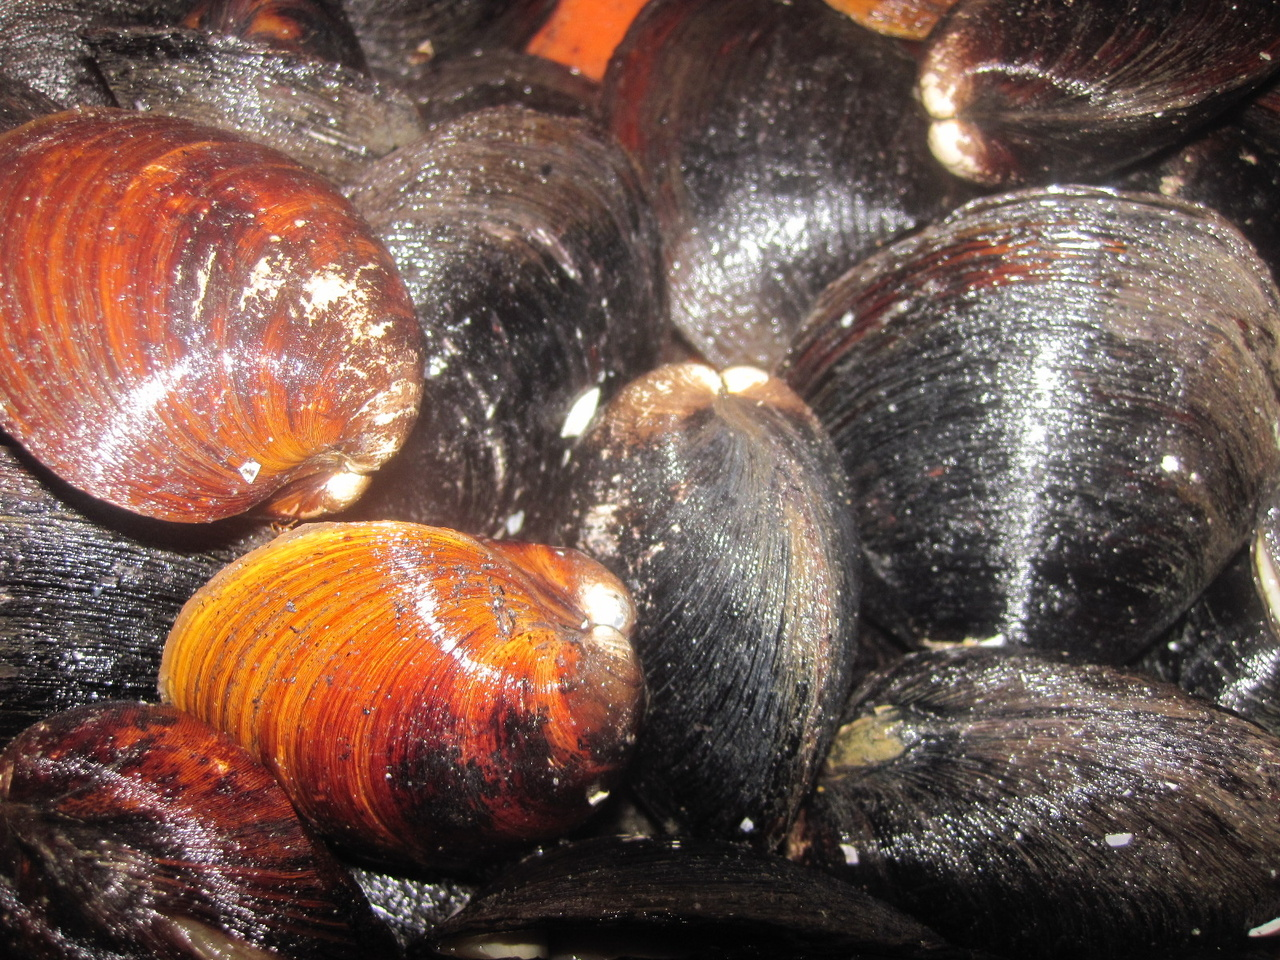 Close-up of clams.